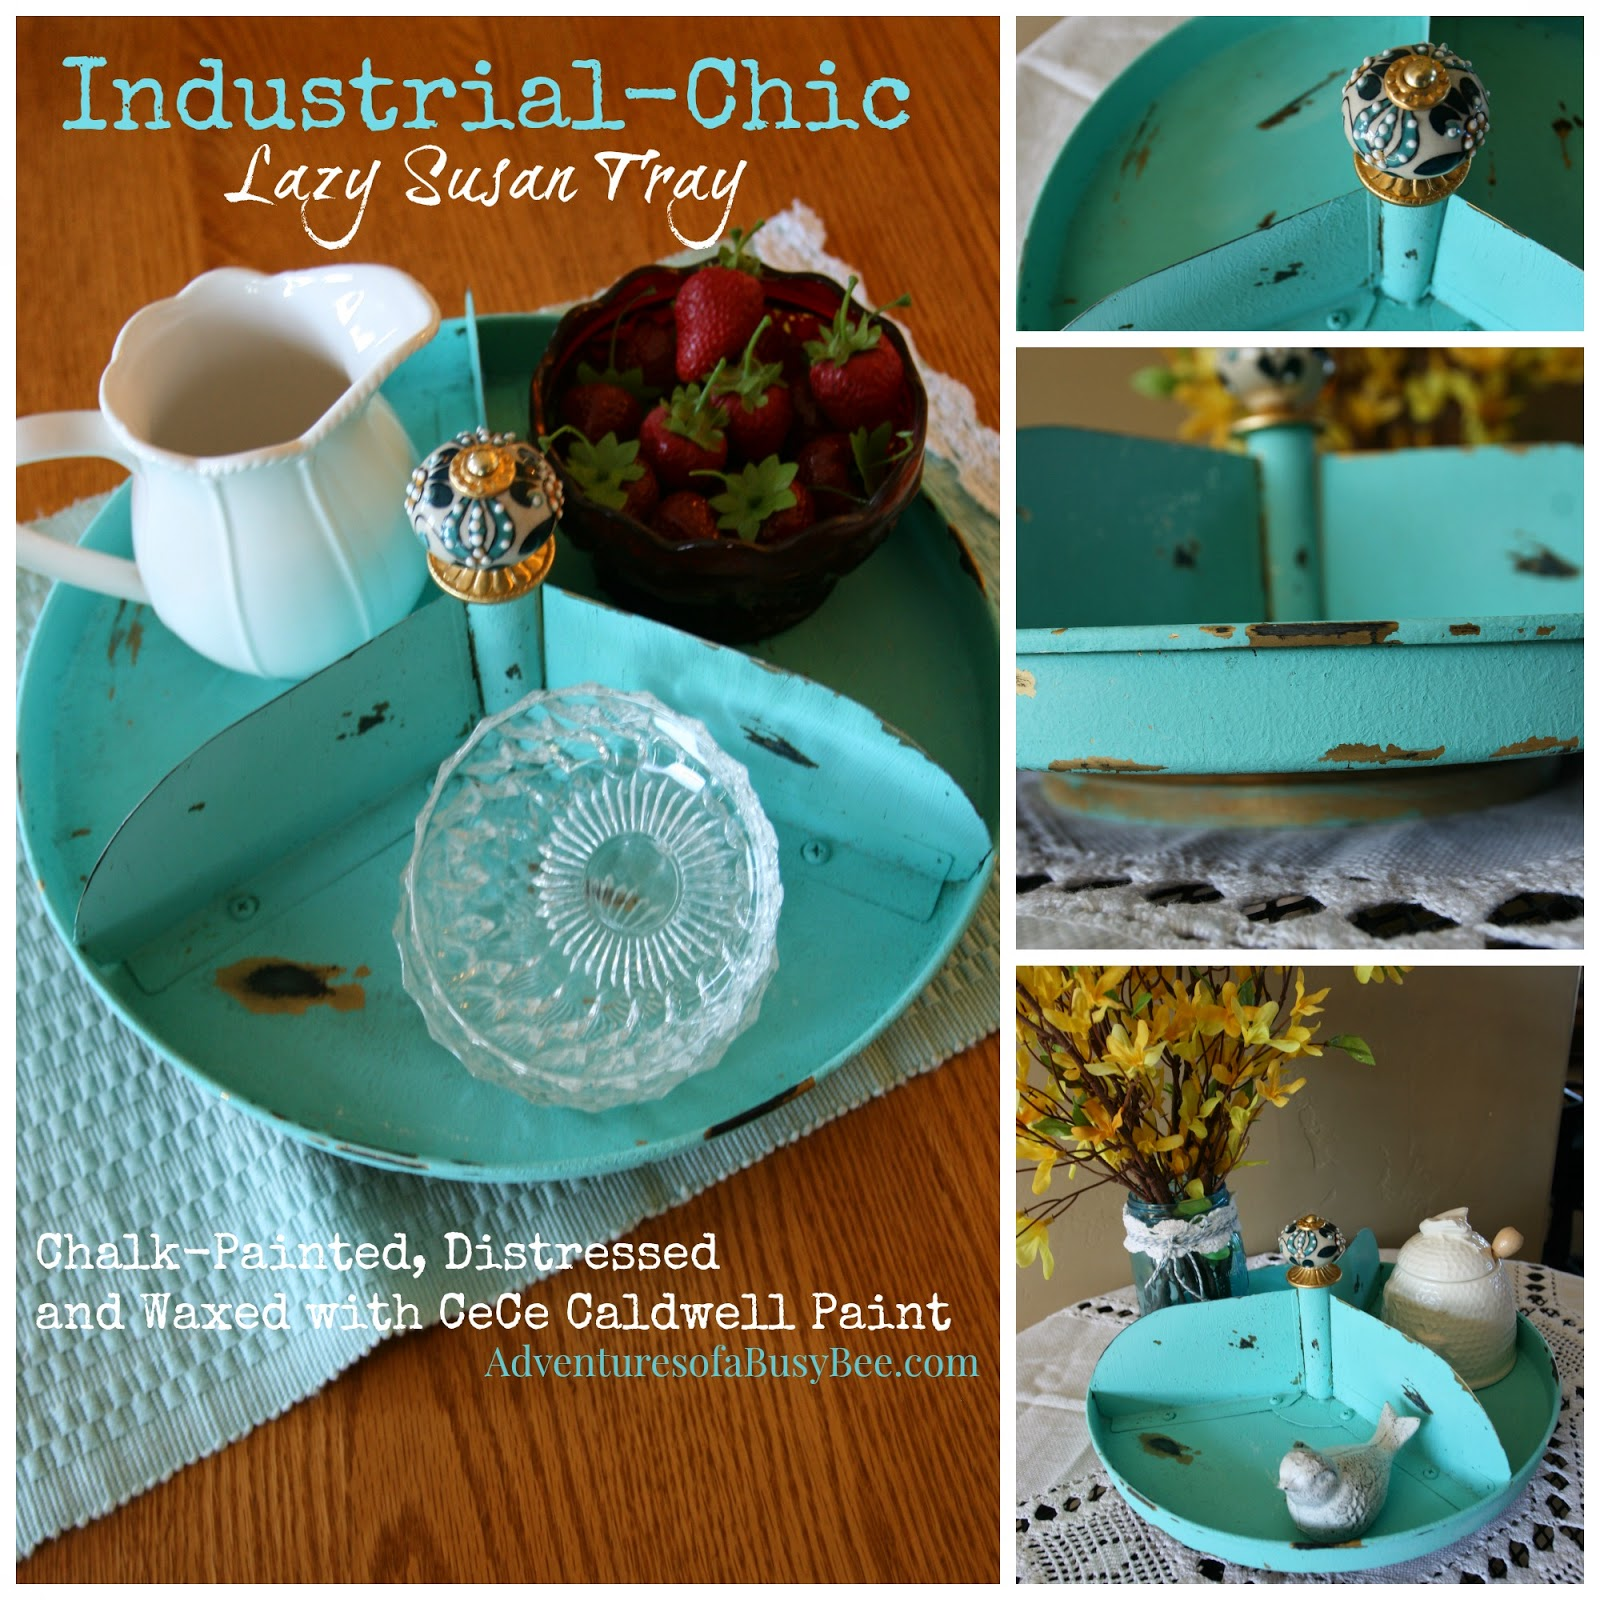 Adventures of a BusyBee: Sweet Industrial-Chic Lazy Susan Tray